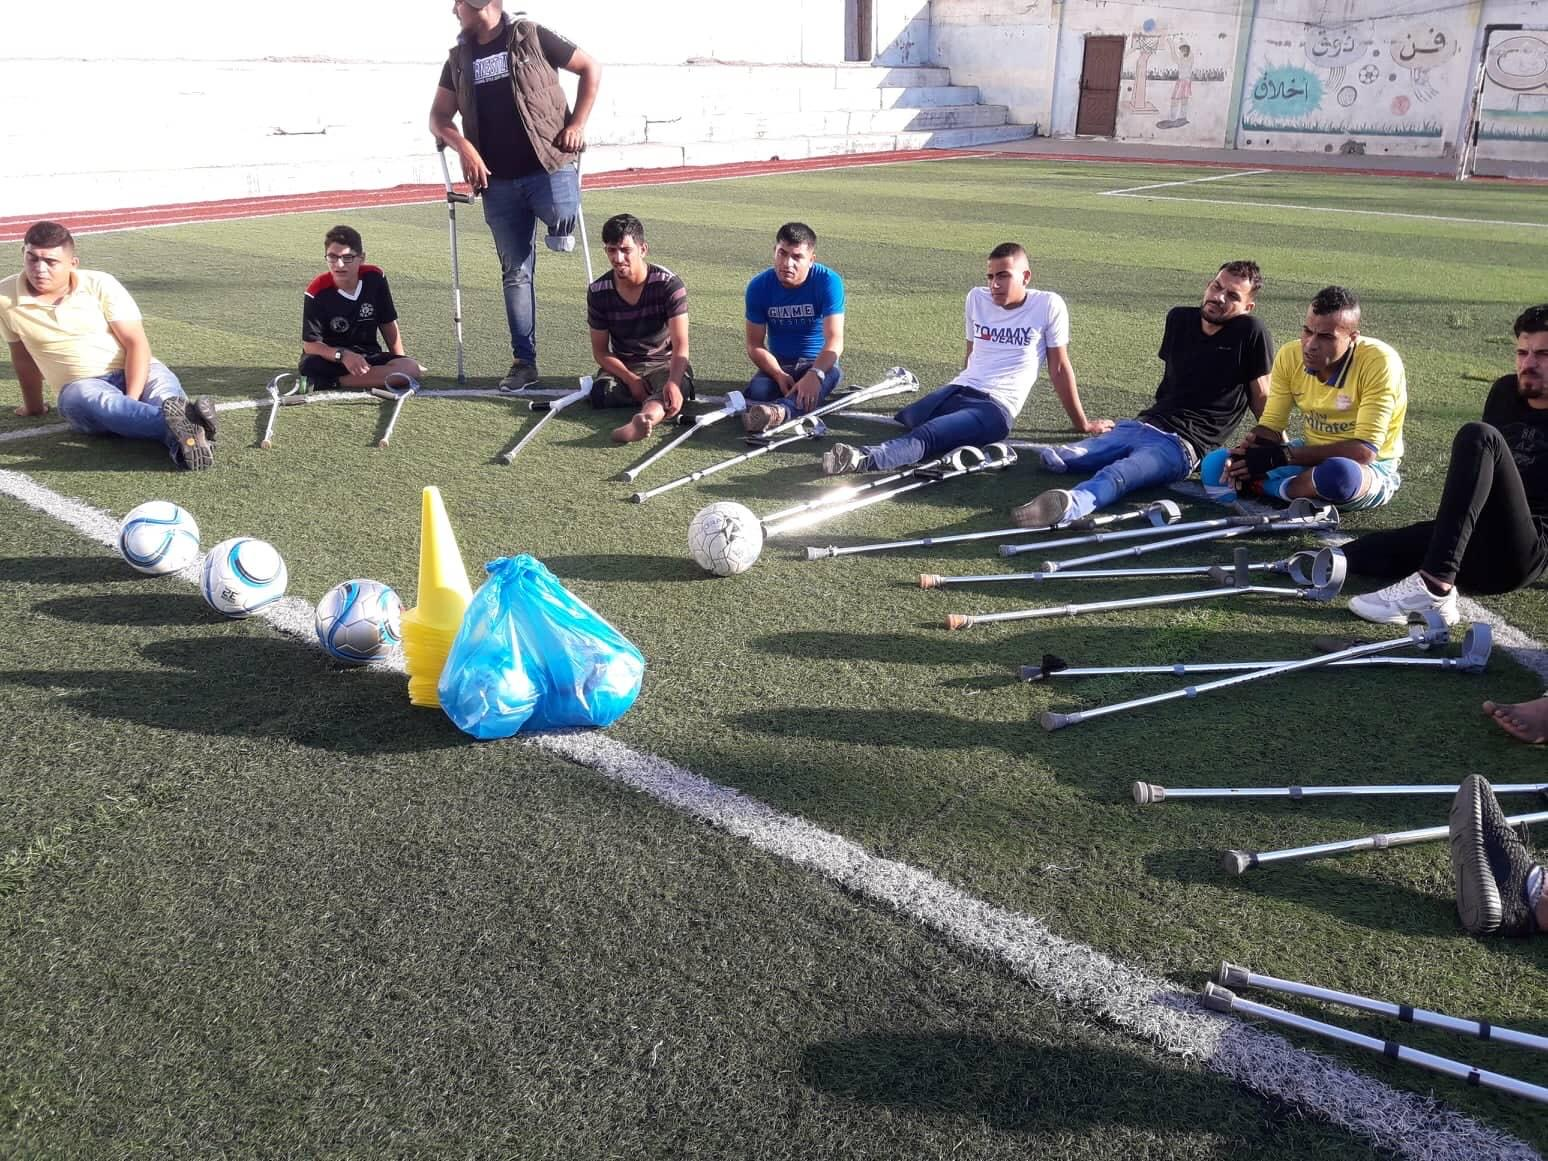 Al Salam Sports Club for Disabled People in Gaza